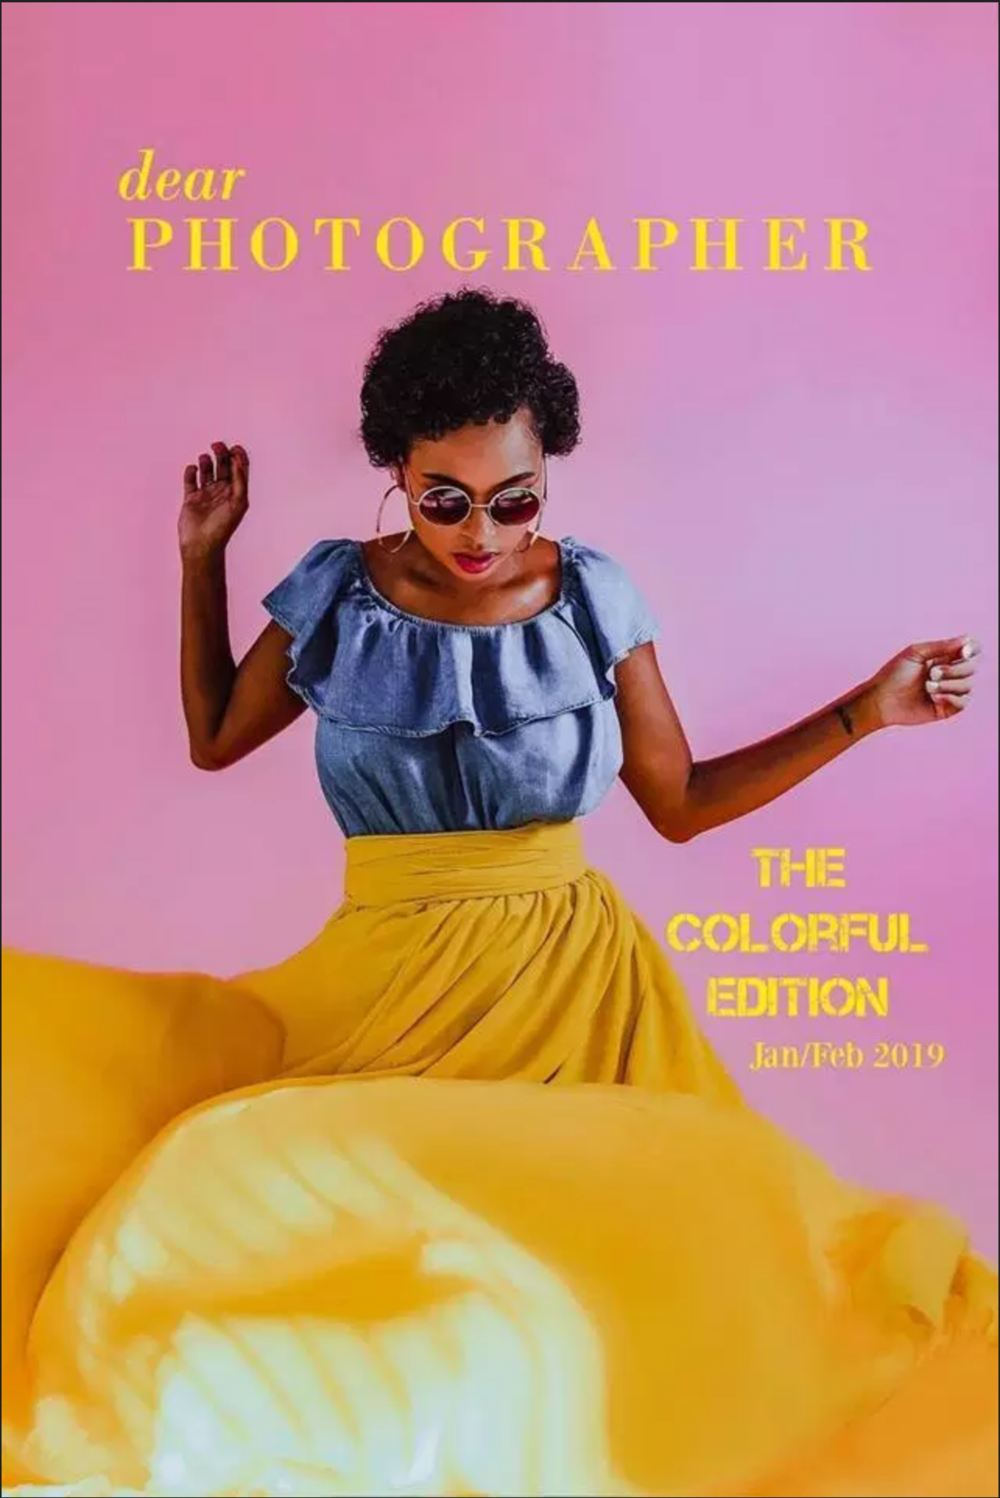 DEAR PHOTOGRAPHER MAGAZINE - The COLORFUL Edition: Top 10 2018